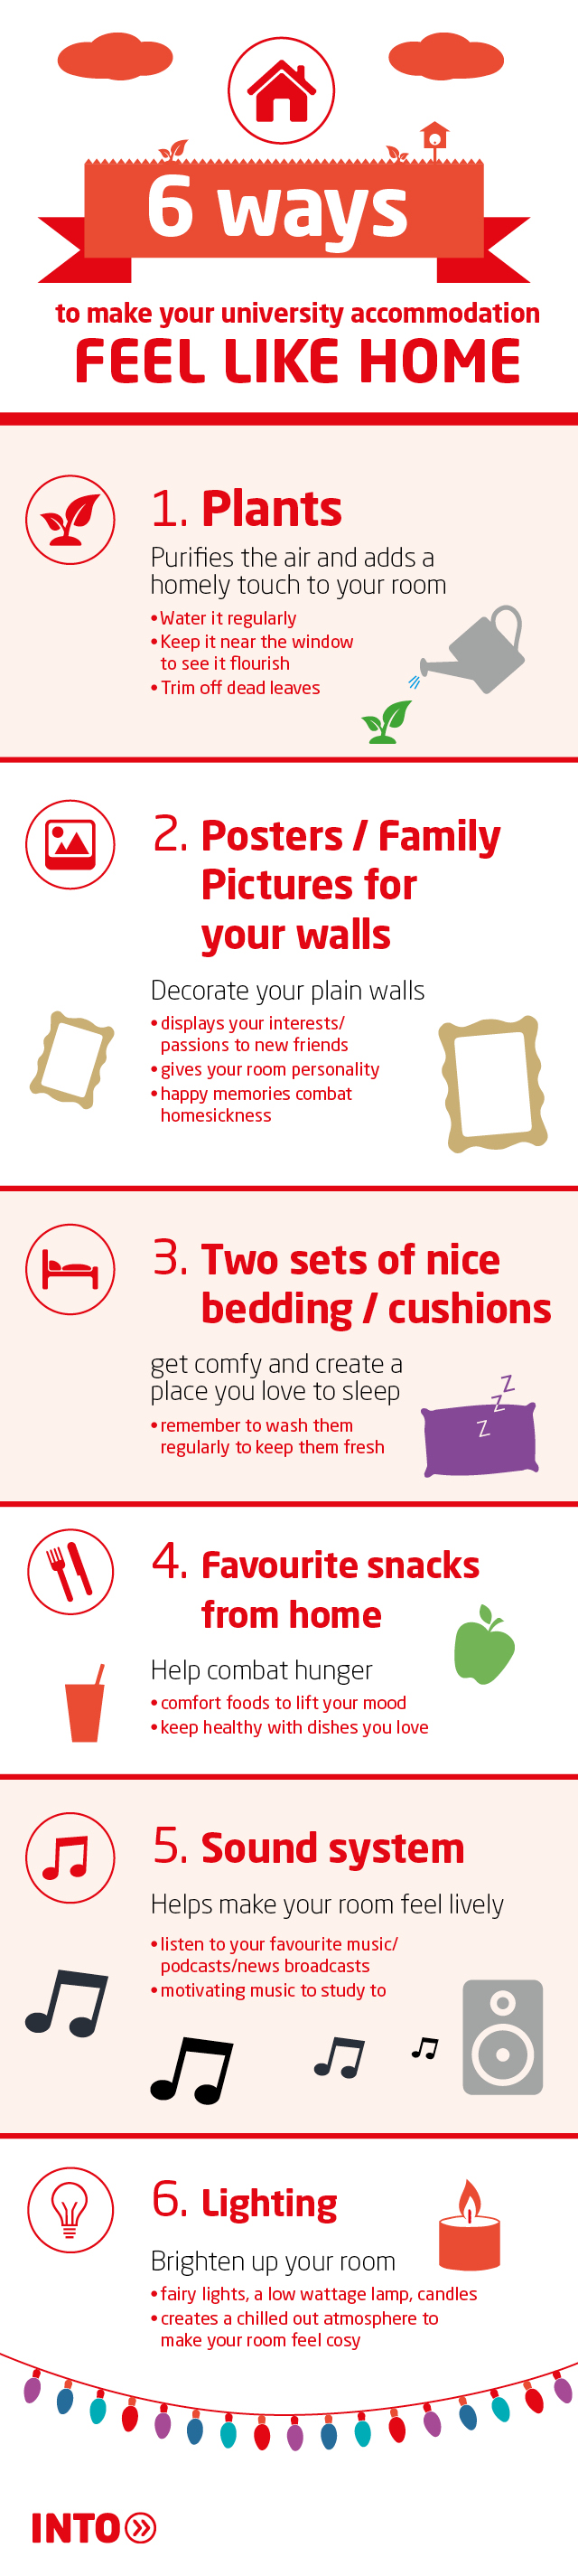 Top tips infographic for personalising your university accommodation